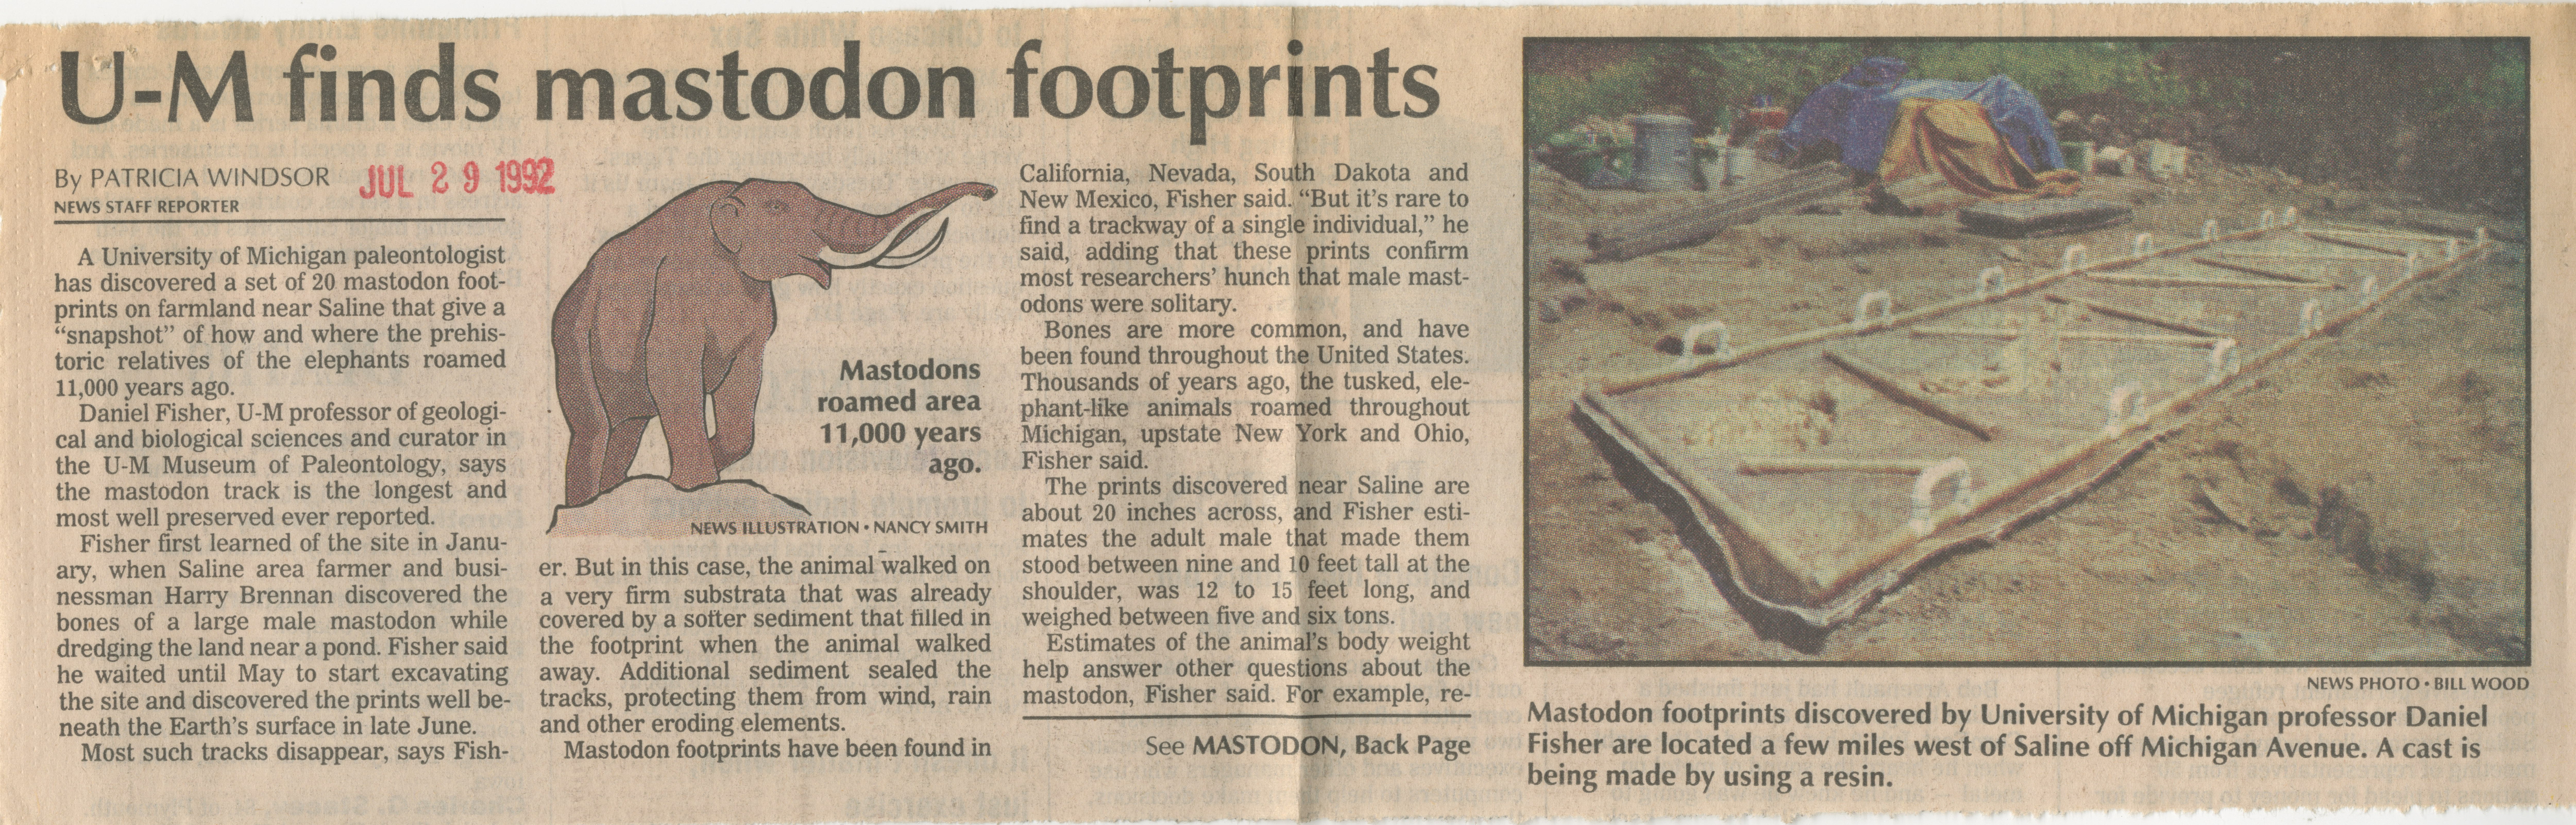 U-M Finds Mastodon Footprints image